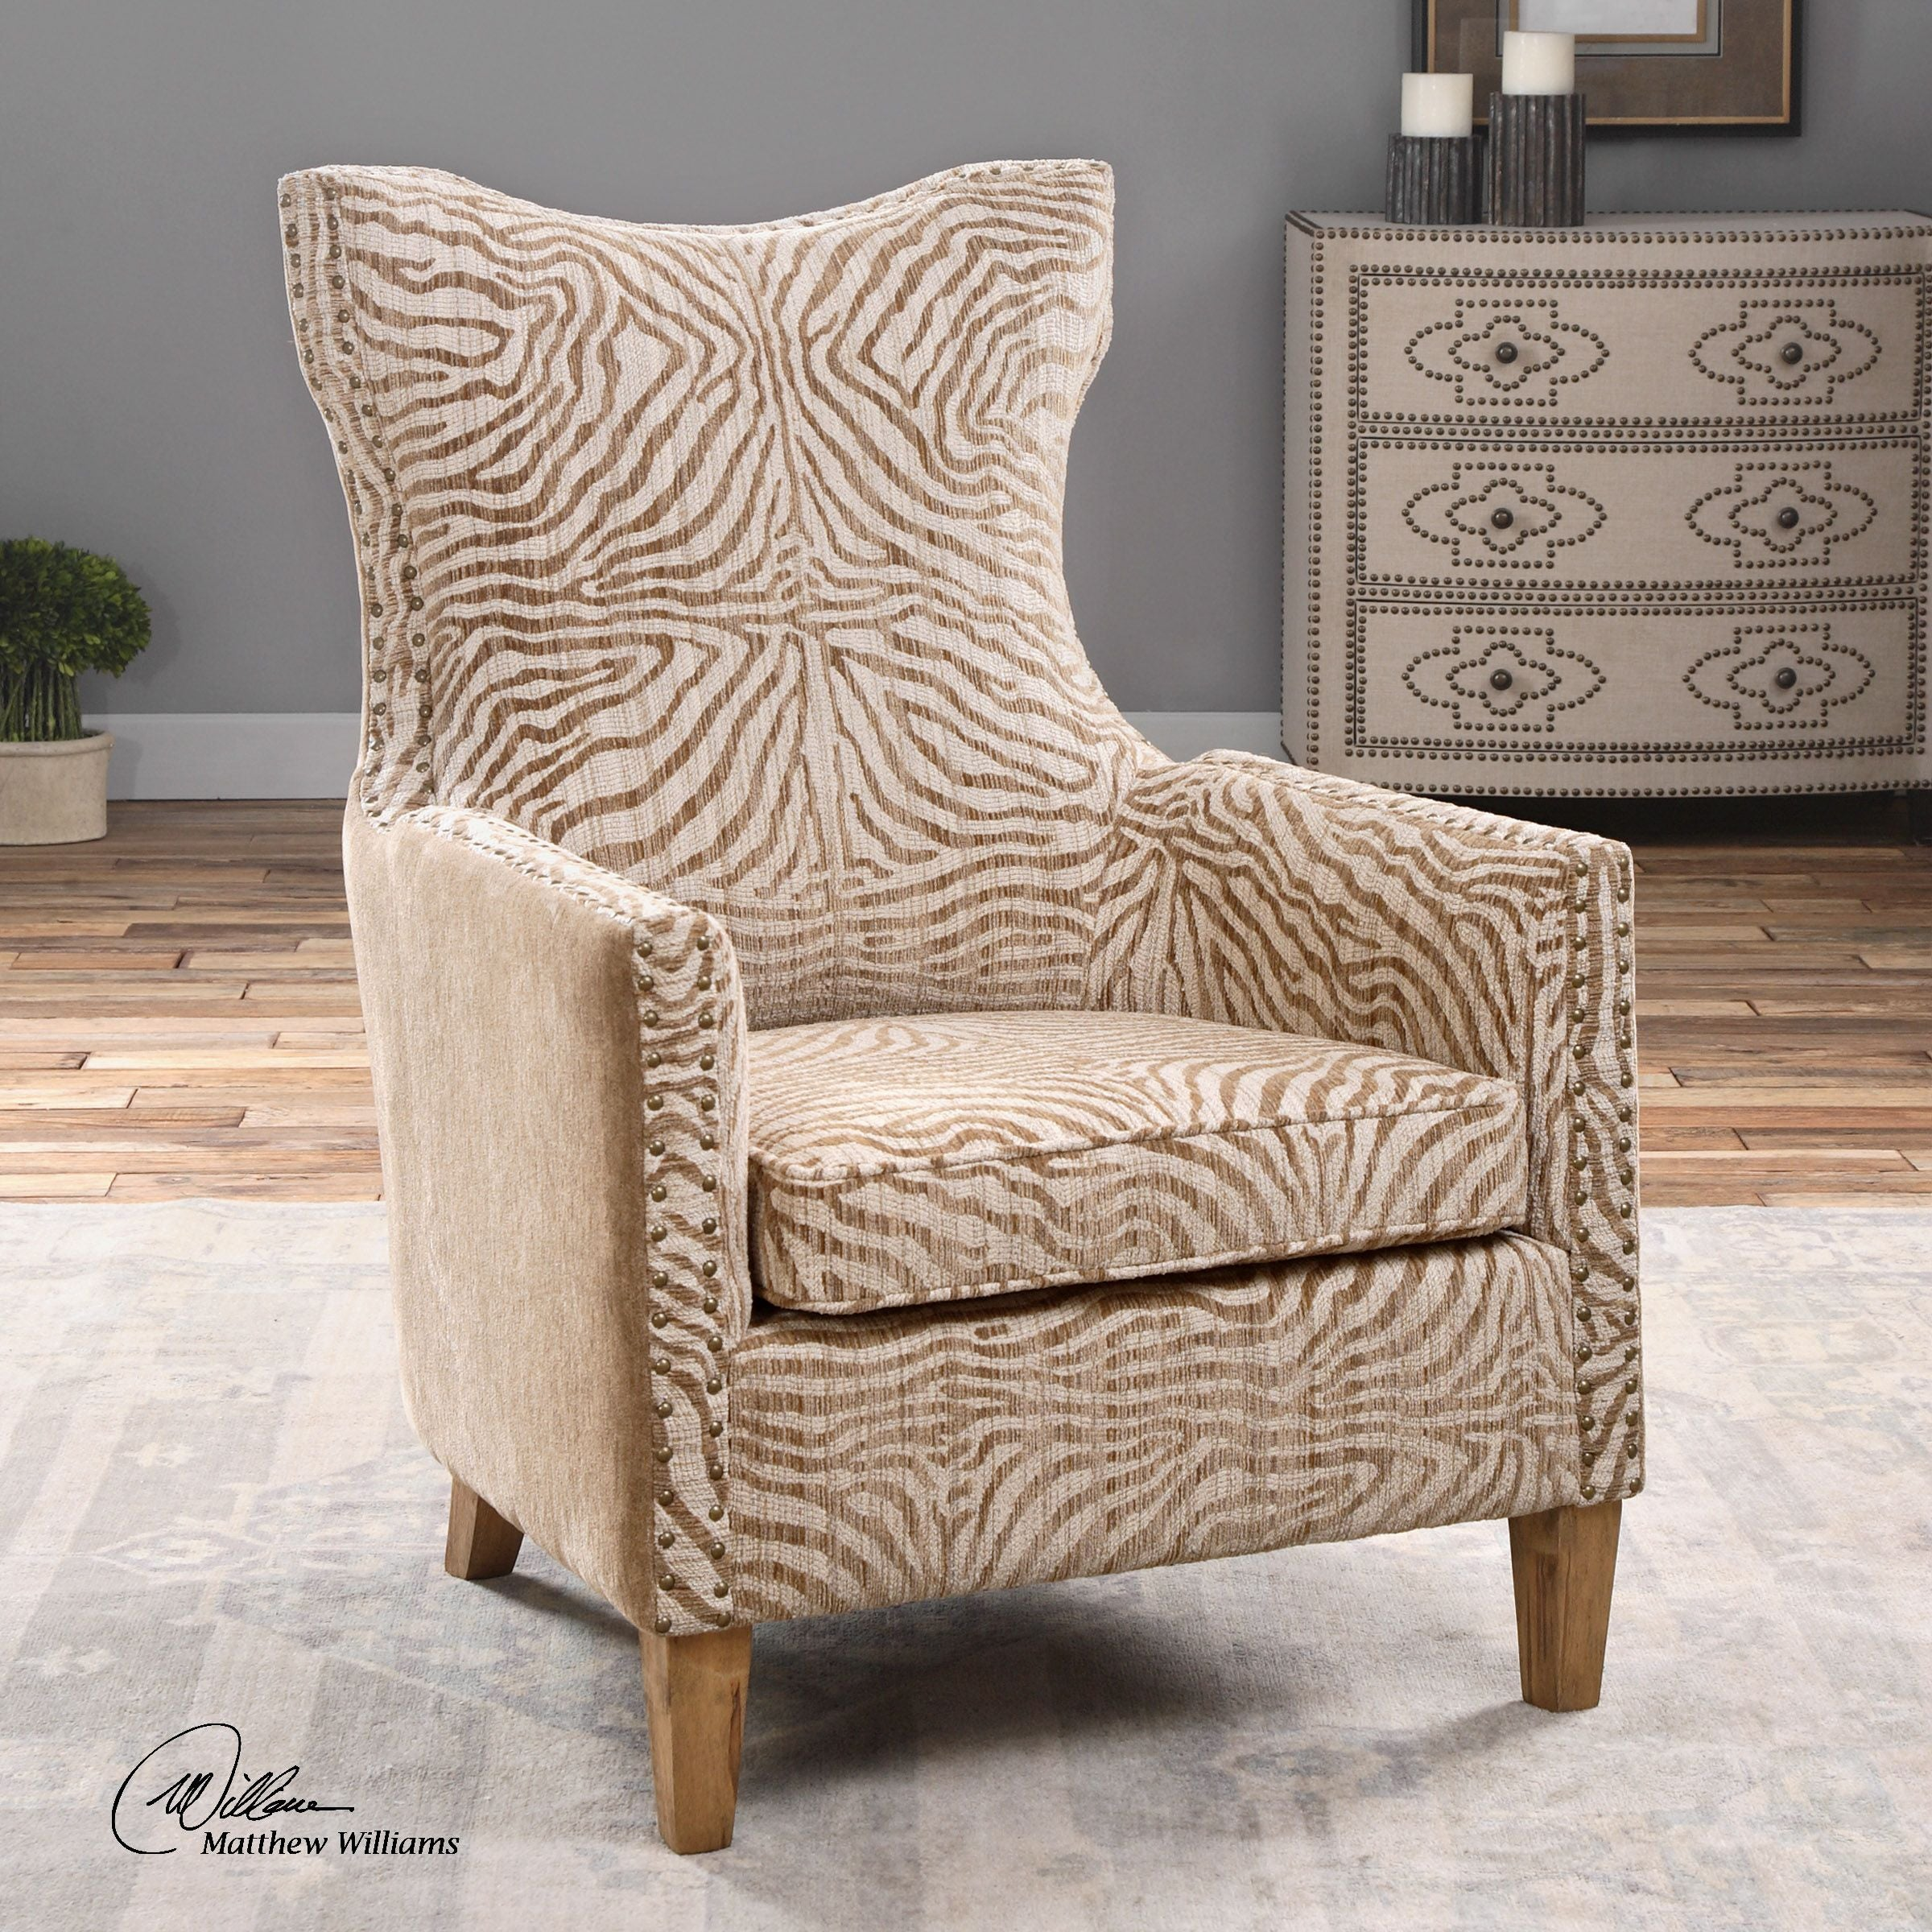 Kiango Animal Print Accent Chair | Innovations Designer Home ... on leopard print living room furniture, leopard chair, beauty furniture home, paisley furniture home, leopard reclining sofa, leopard print furniture and accessories, zebra furniture home, leopard print retro furniture, animal print for the home, beach furniture home,